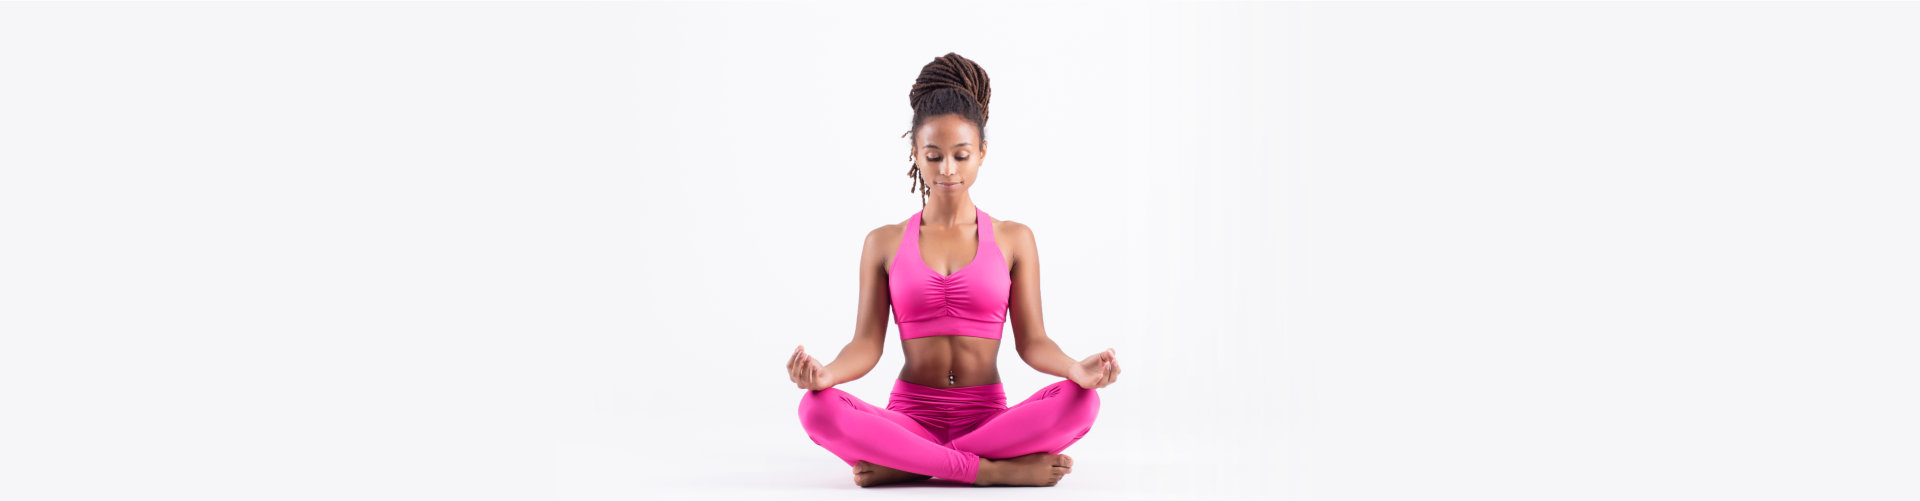 Pretty young happy black woman doing yoga exercise isolated on white background